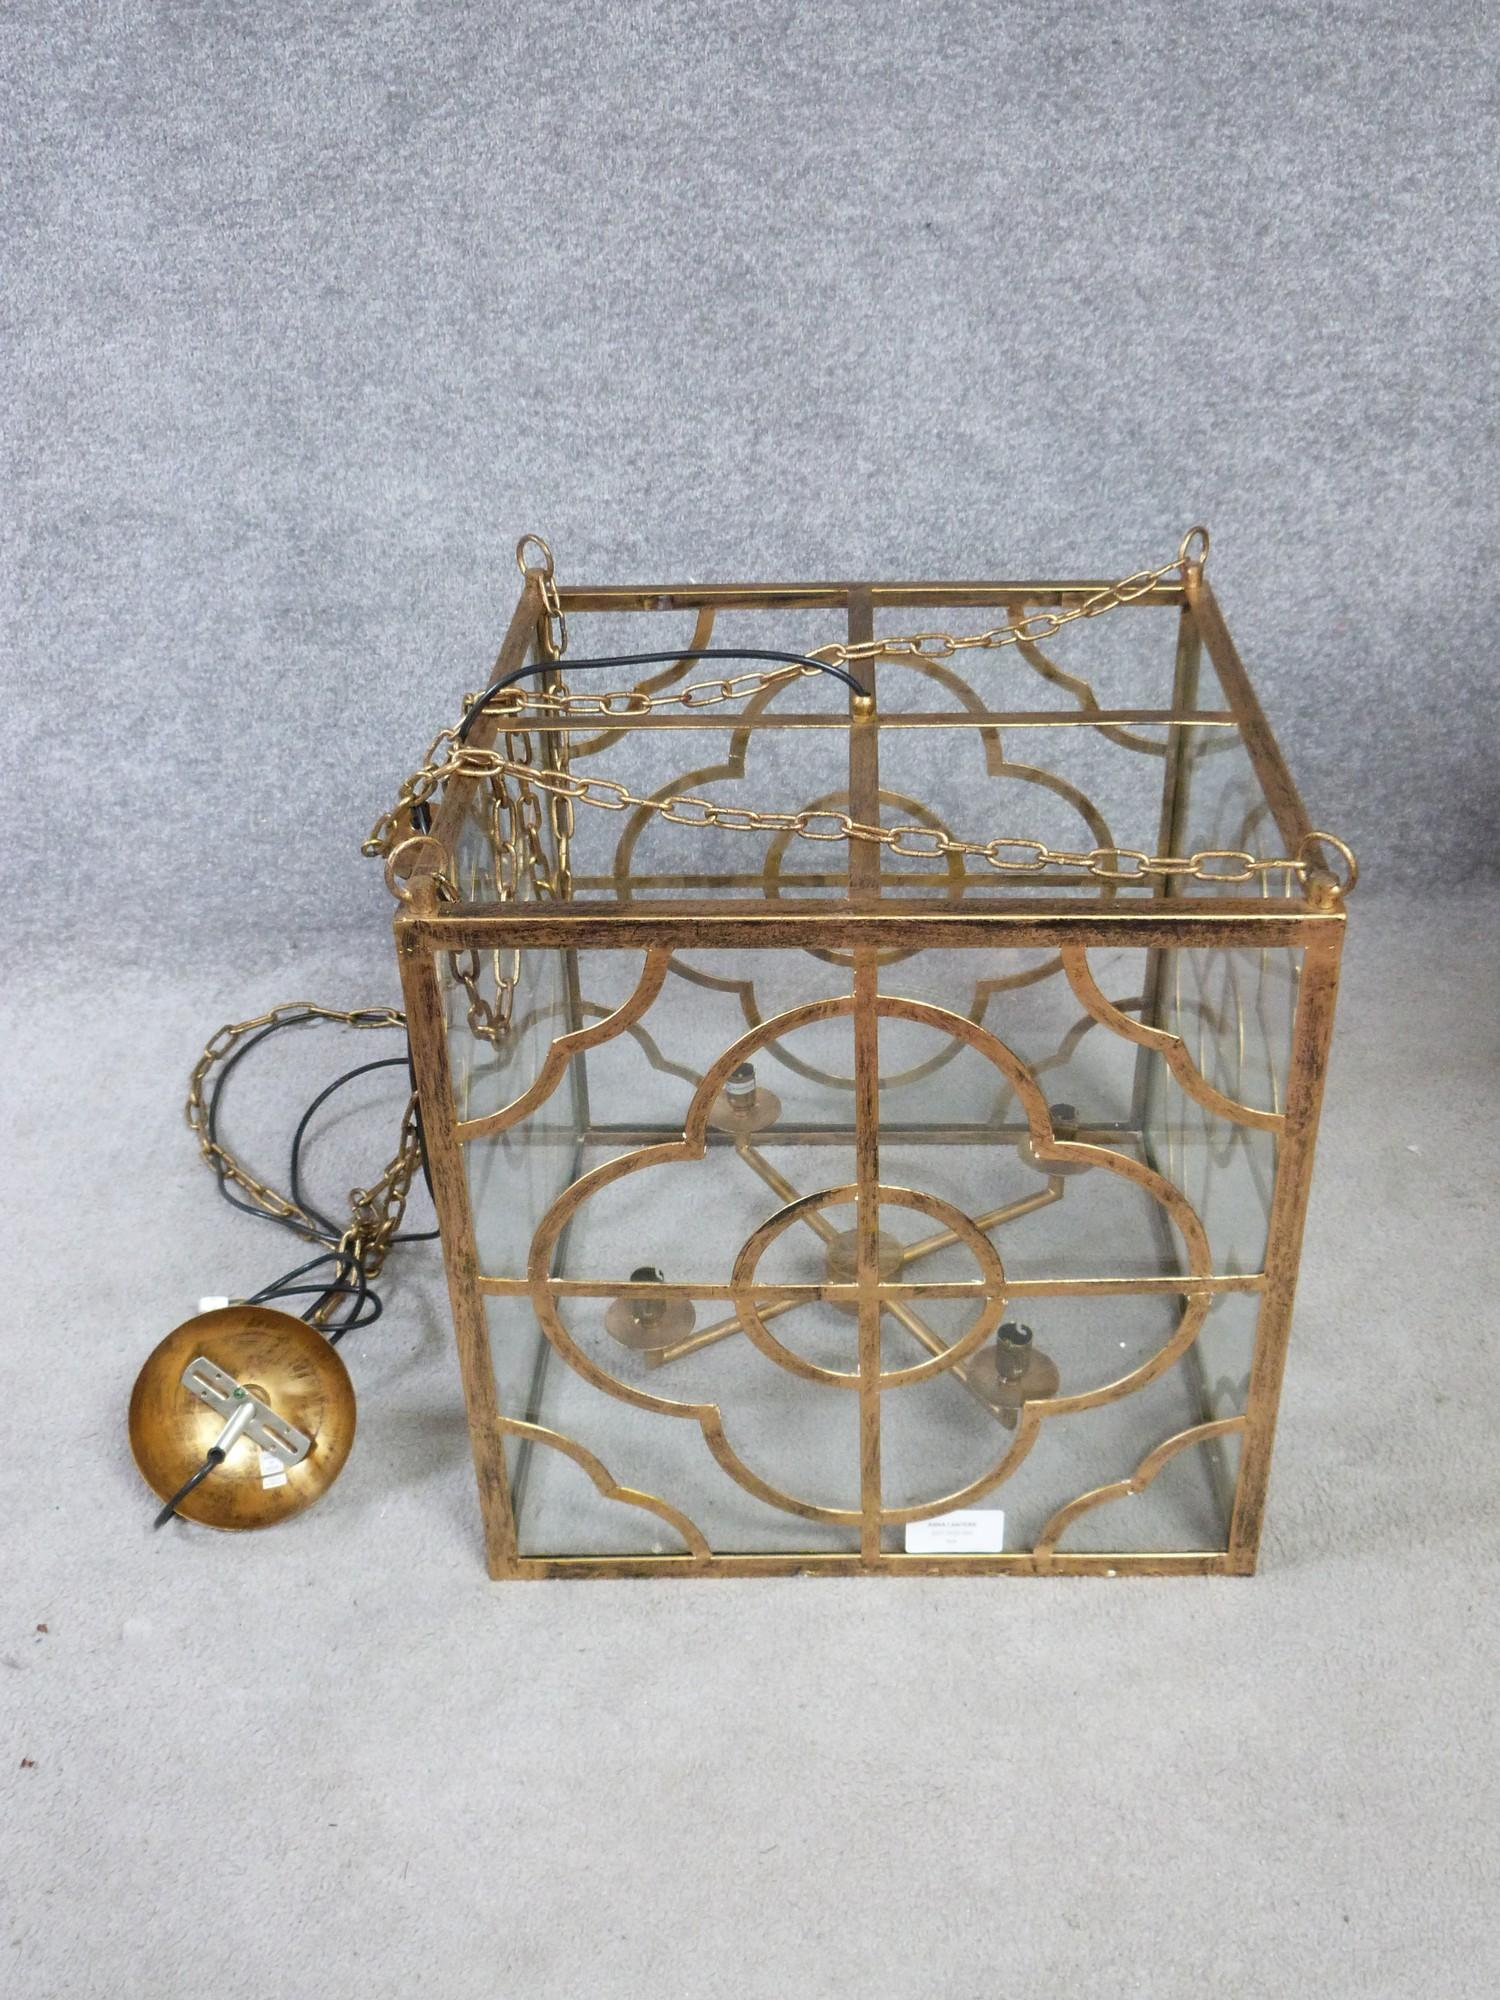 A Julian Chichester gold 'Anna' design pierced metal hanging ceiling lantern with stylised floral - Image 2 of 8